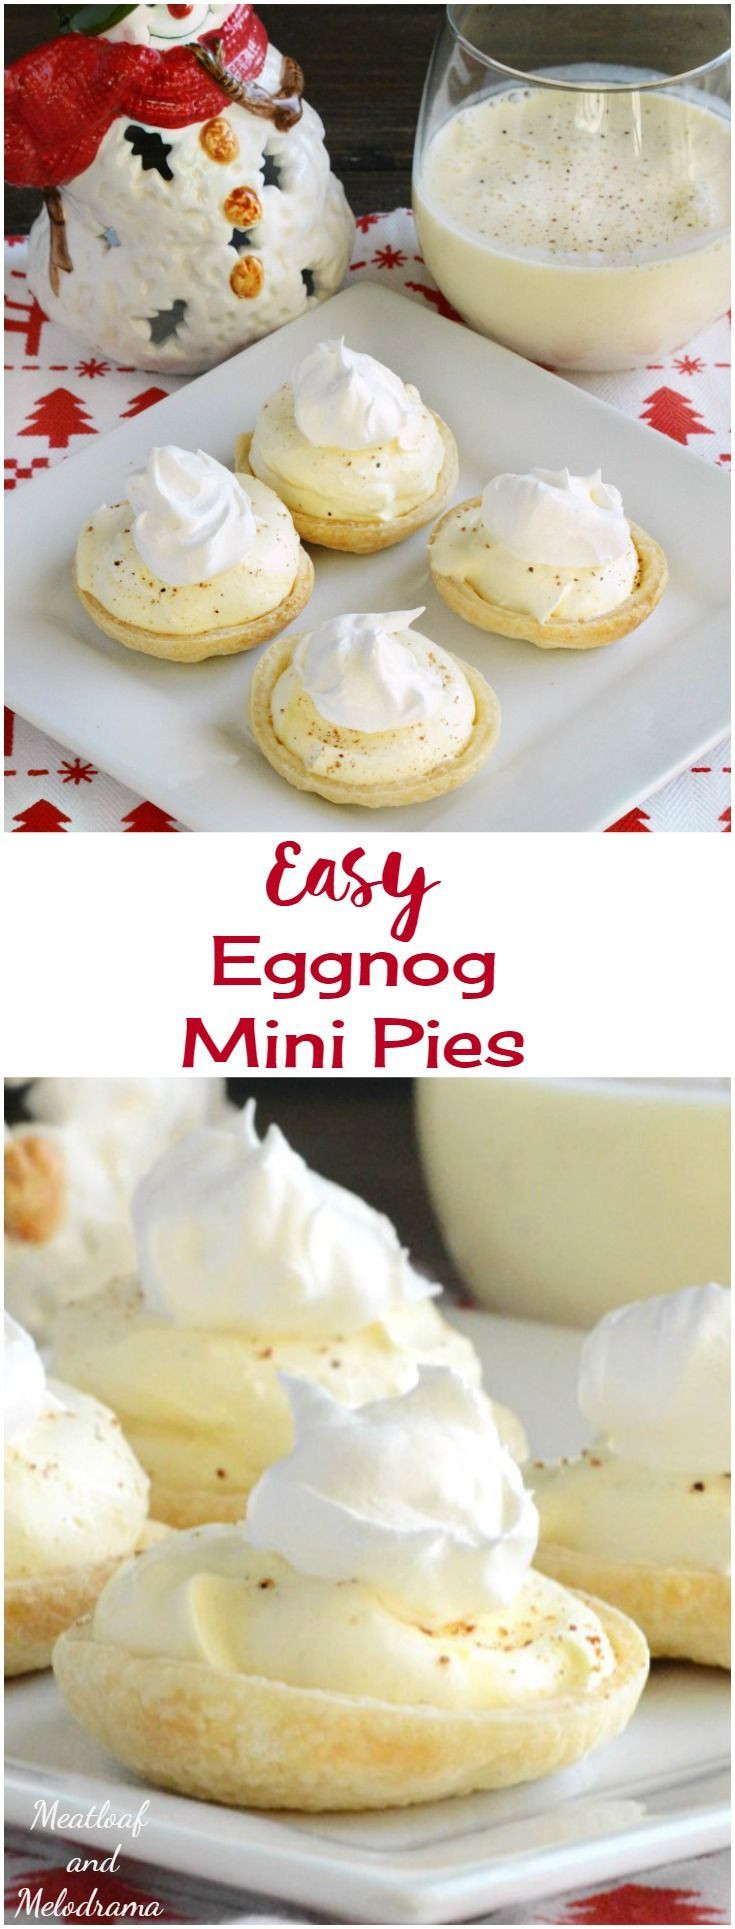 Quick And Easy Christmas Desserts  Easy Eggnog Mini Pies A quick and easy dessert that is